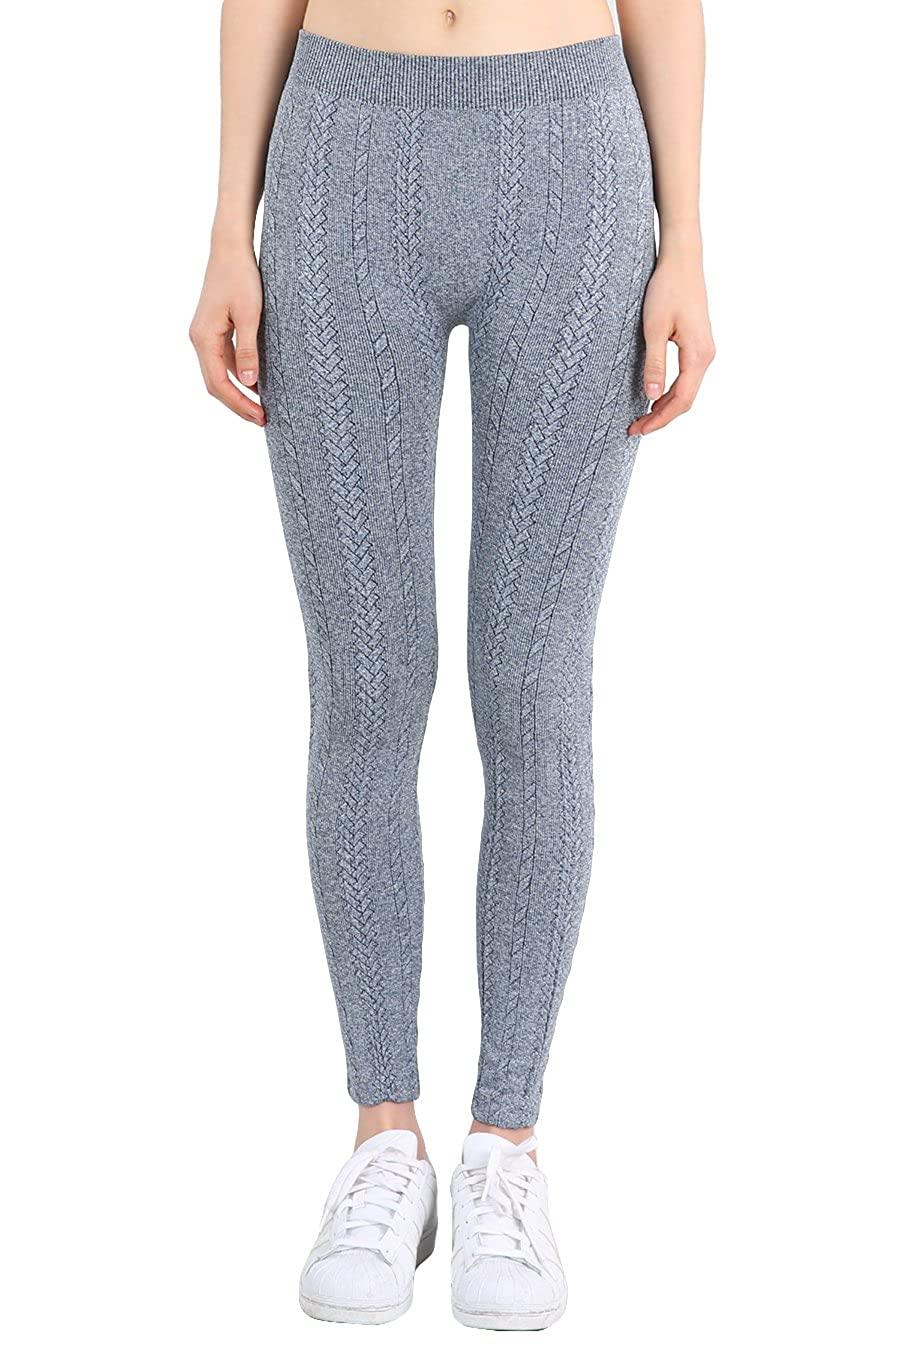 eb57a1d78633e 100% QUALITY GUARANTEE - We take great pride in providing top notch quality  leggings that were manufactured in-house made in USA. We can provide  exchanges ...